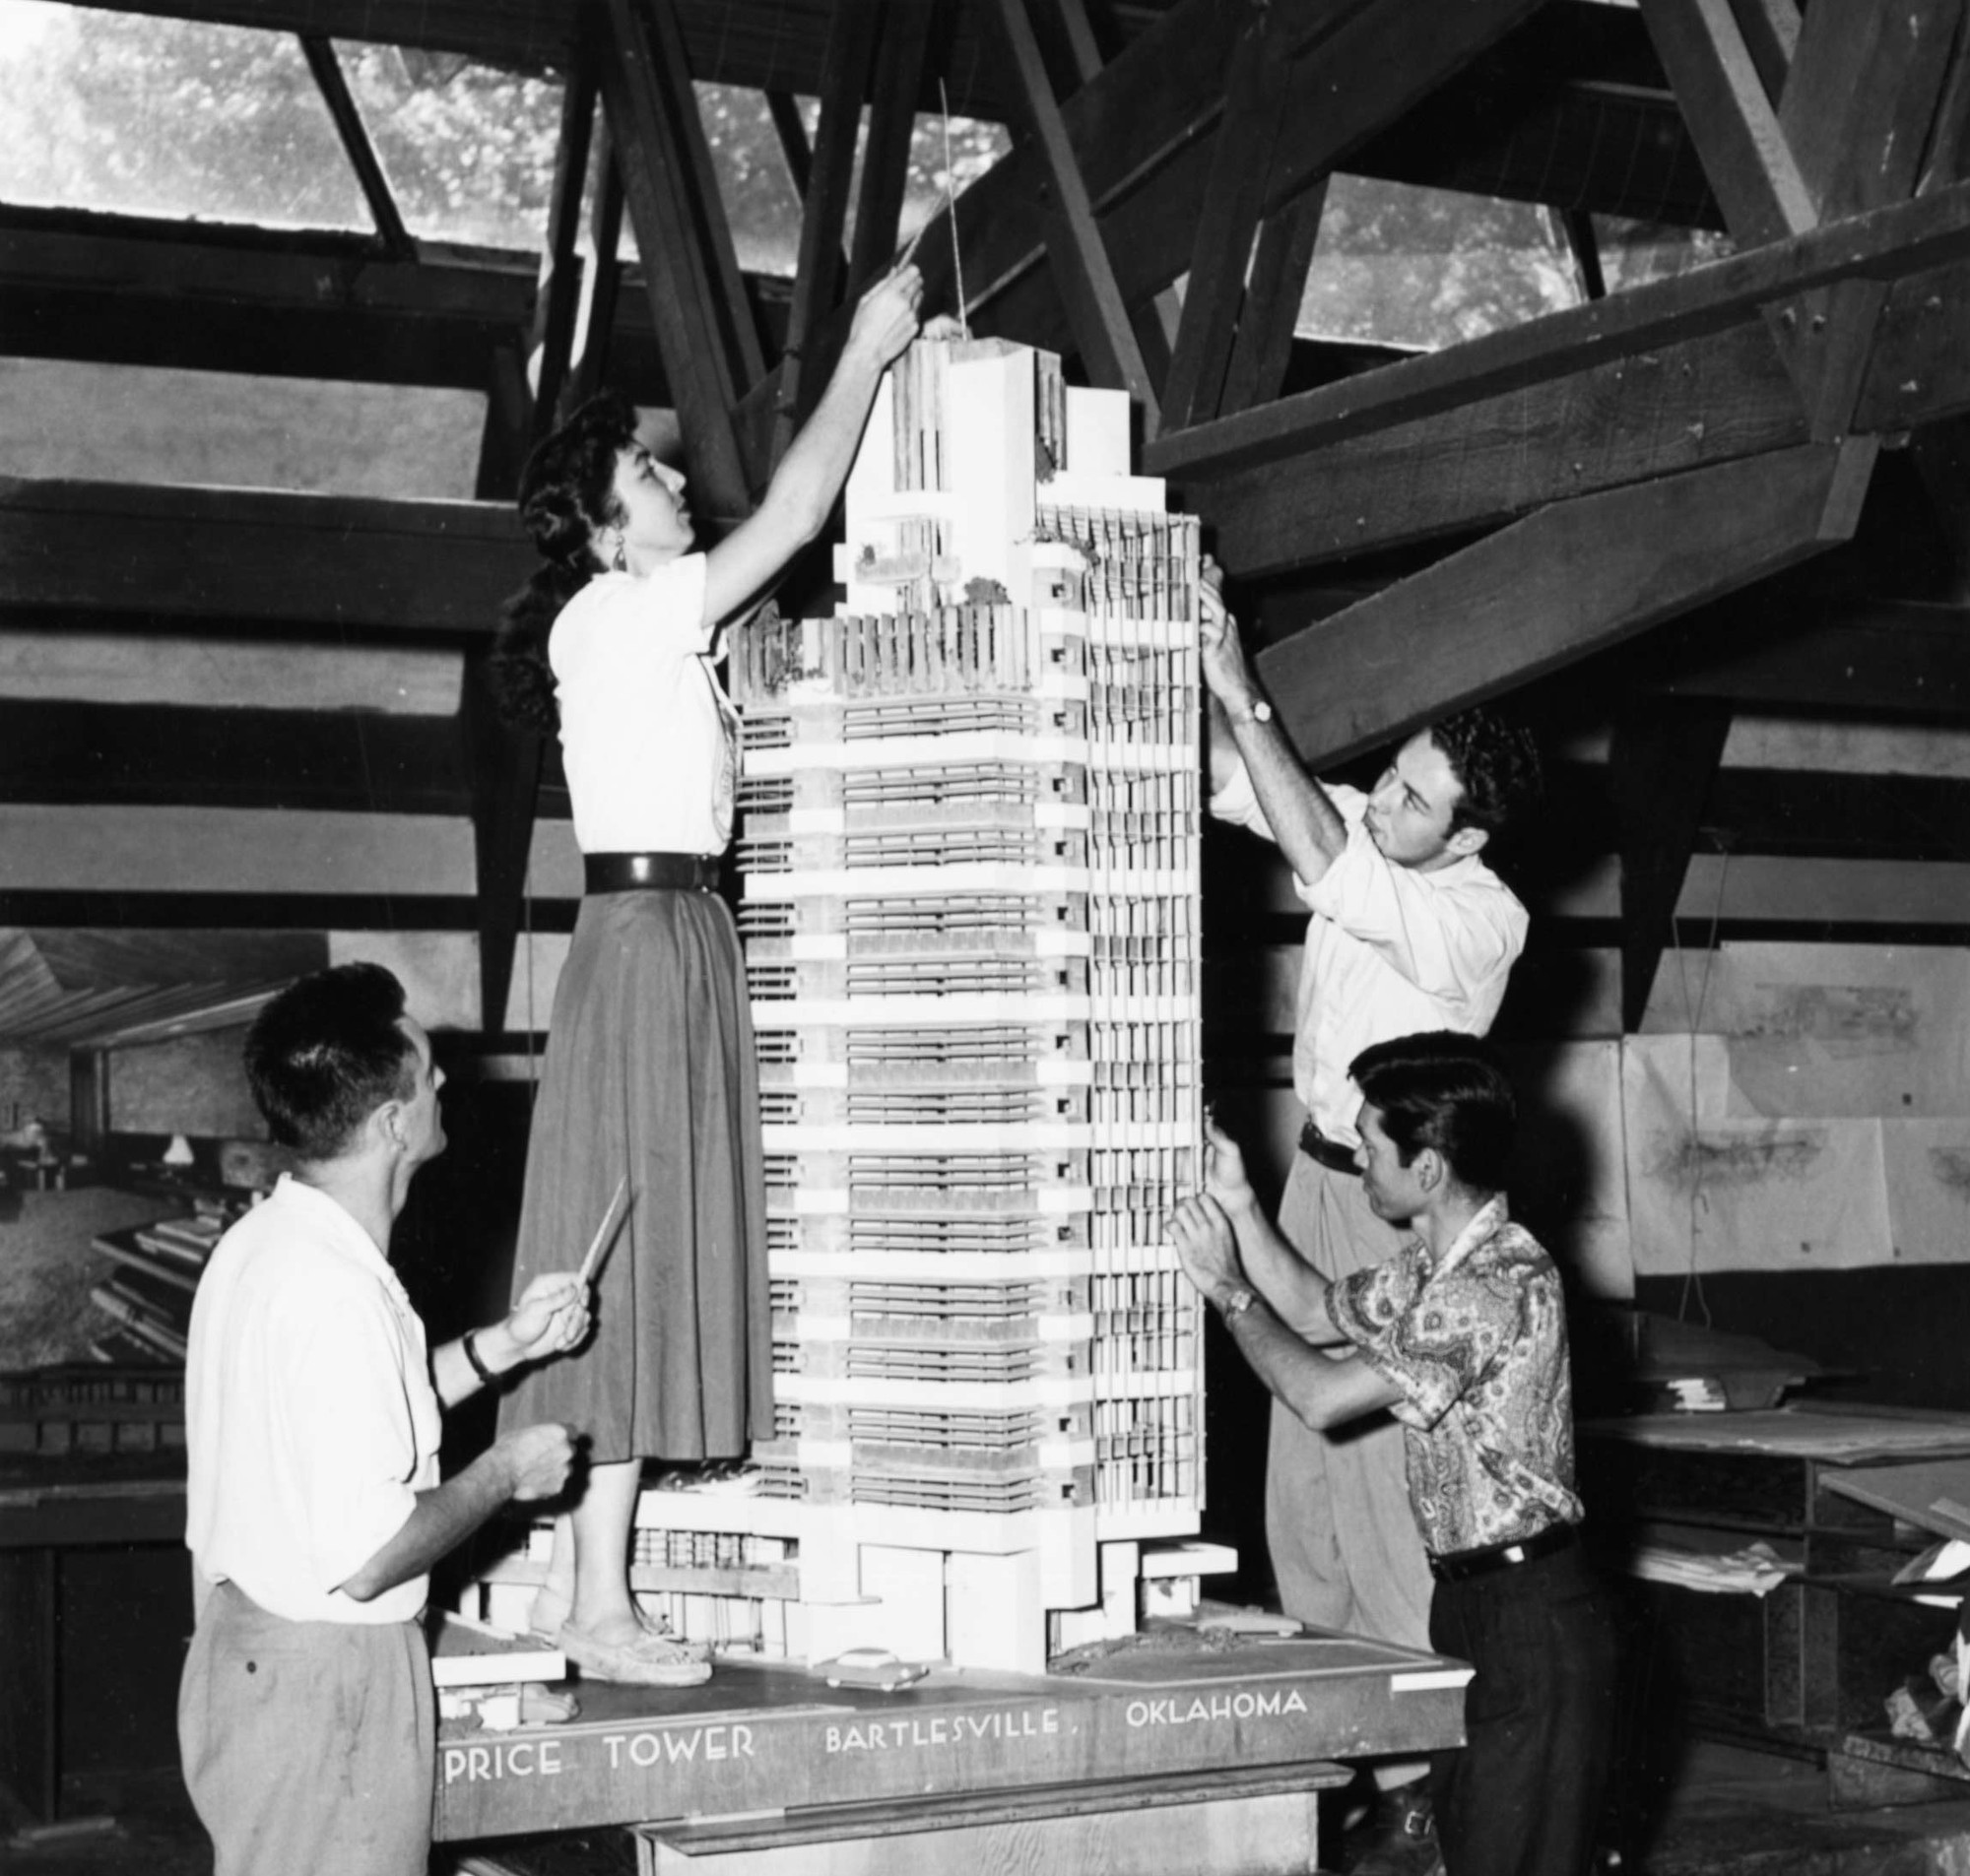 Frank Lloyd Wright. H. C. Price Company Tower, Bartlesville, OK. 1952–56. Apprentices working on the model in the Taliesin drafting room, Spring Green, Winsconsin, c. 1952. The Frank Lloyd Wright Foundation Archives (The Museum of Modern Art | Avery Architectural & Fine Arts Library, Columbia University, New York)